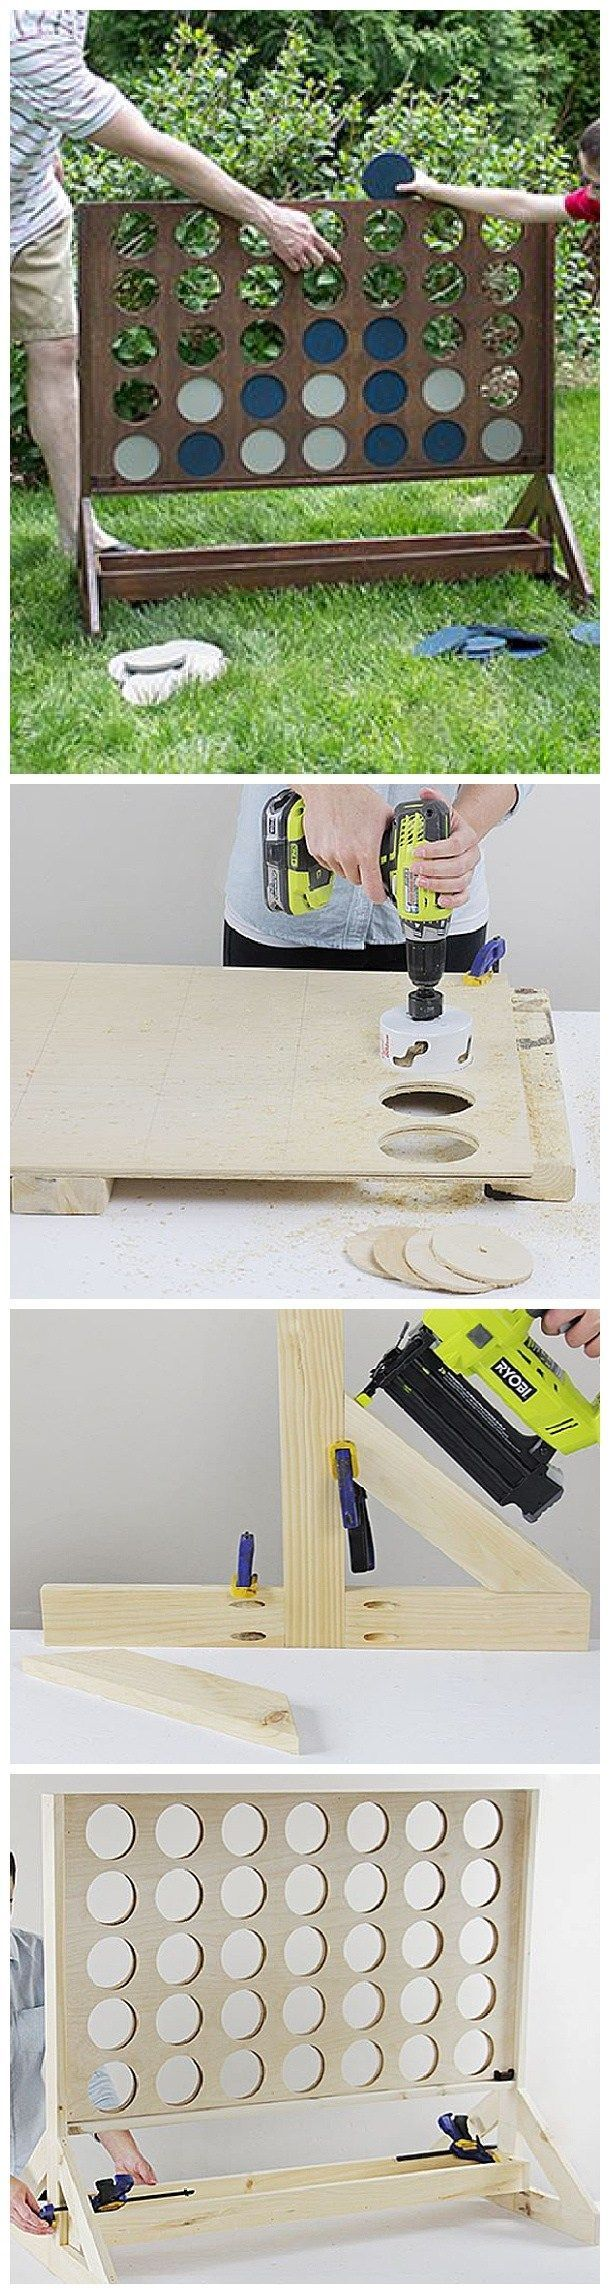 DIY Projects – Outdoor Games – Do It Yourself Connect Four or Four in a Row Game – Easy Woodworking Project – So fun for backyard